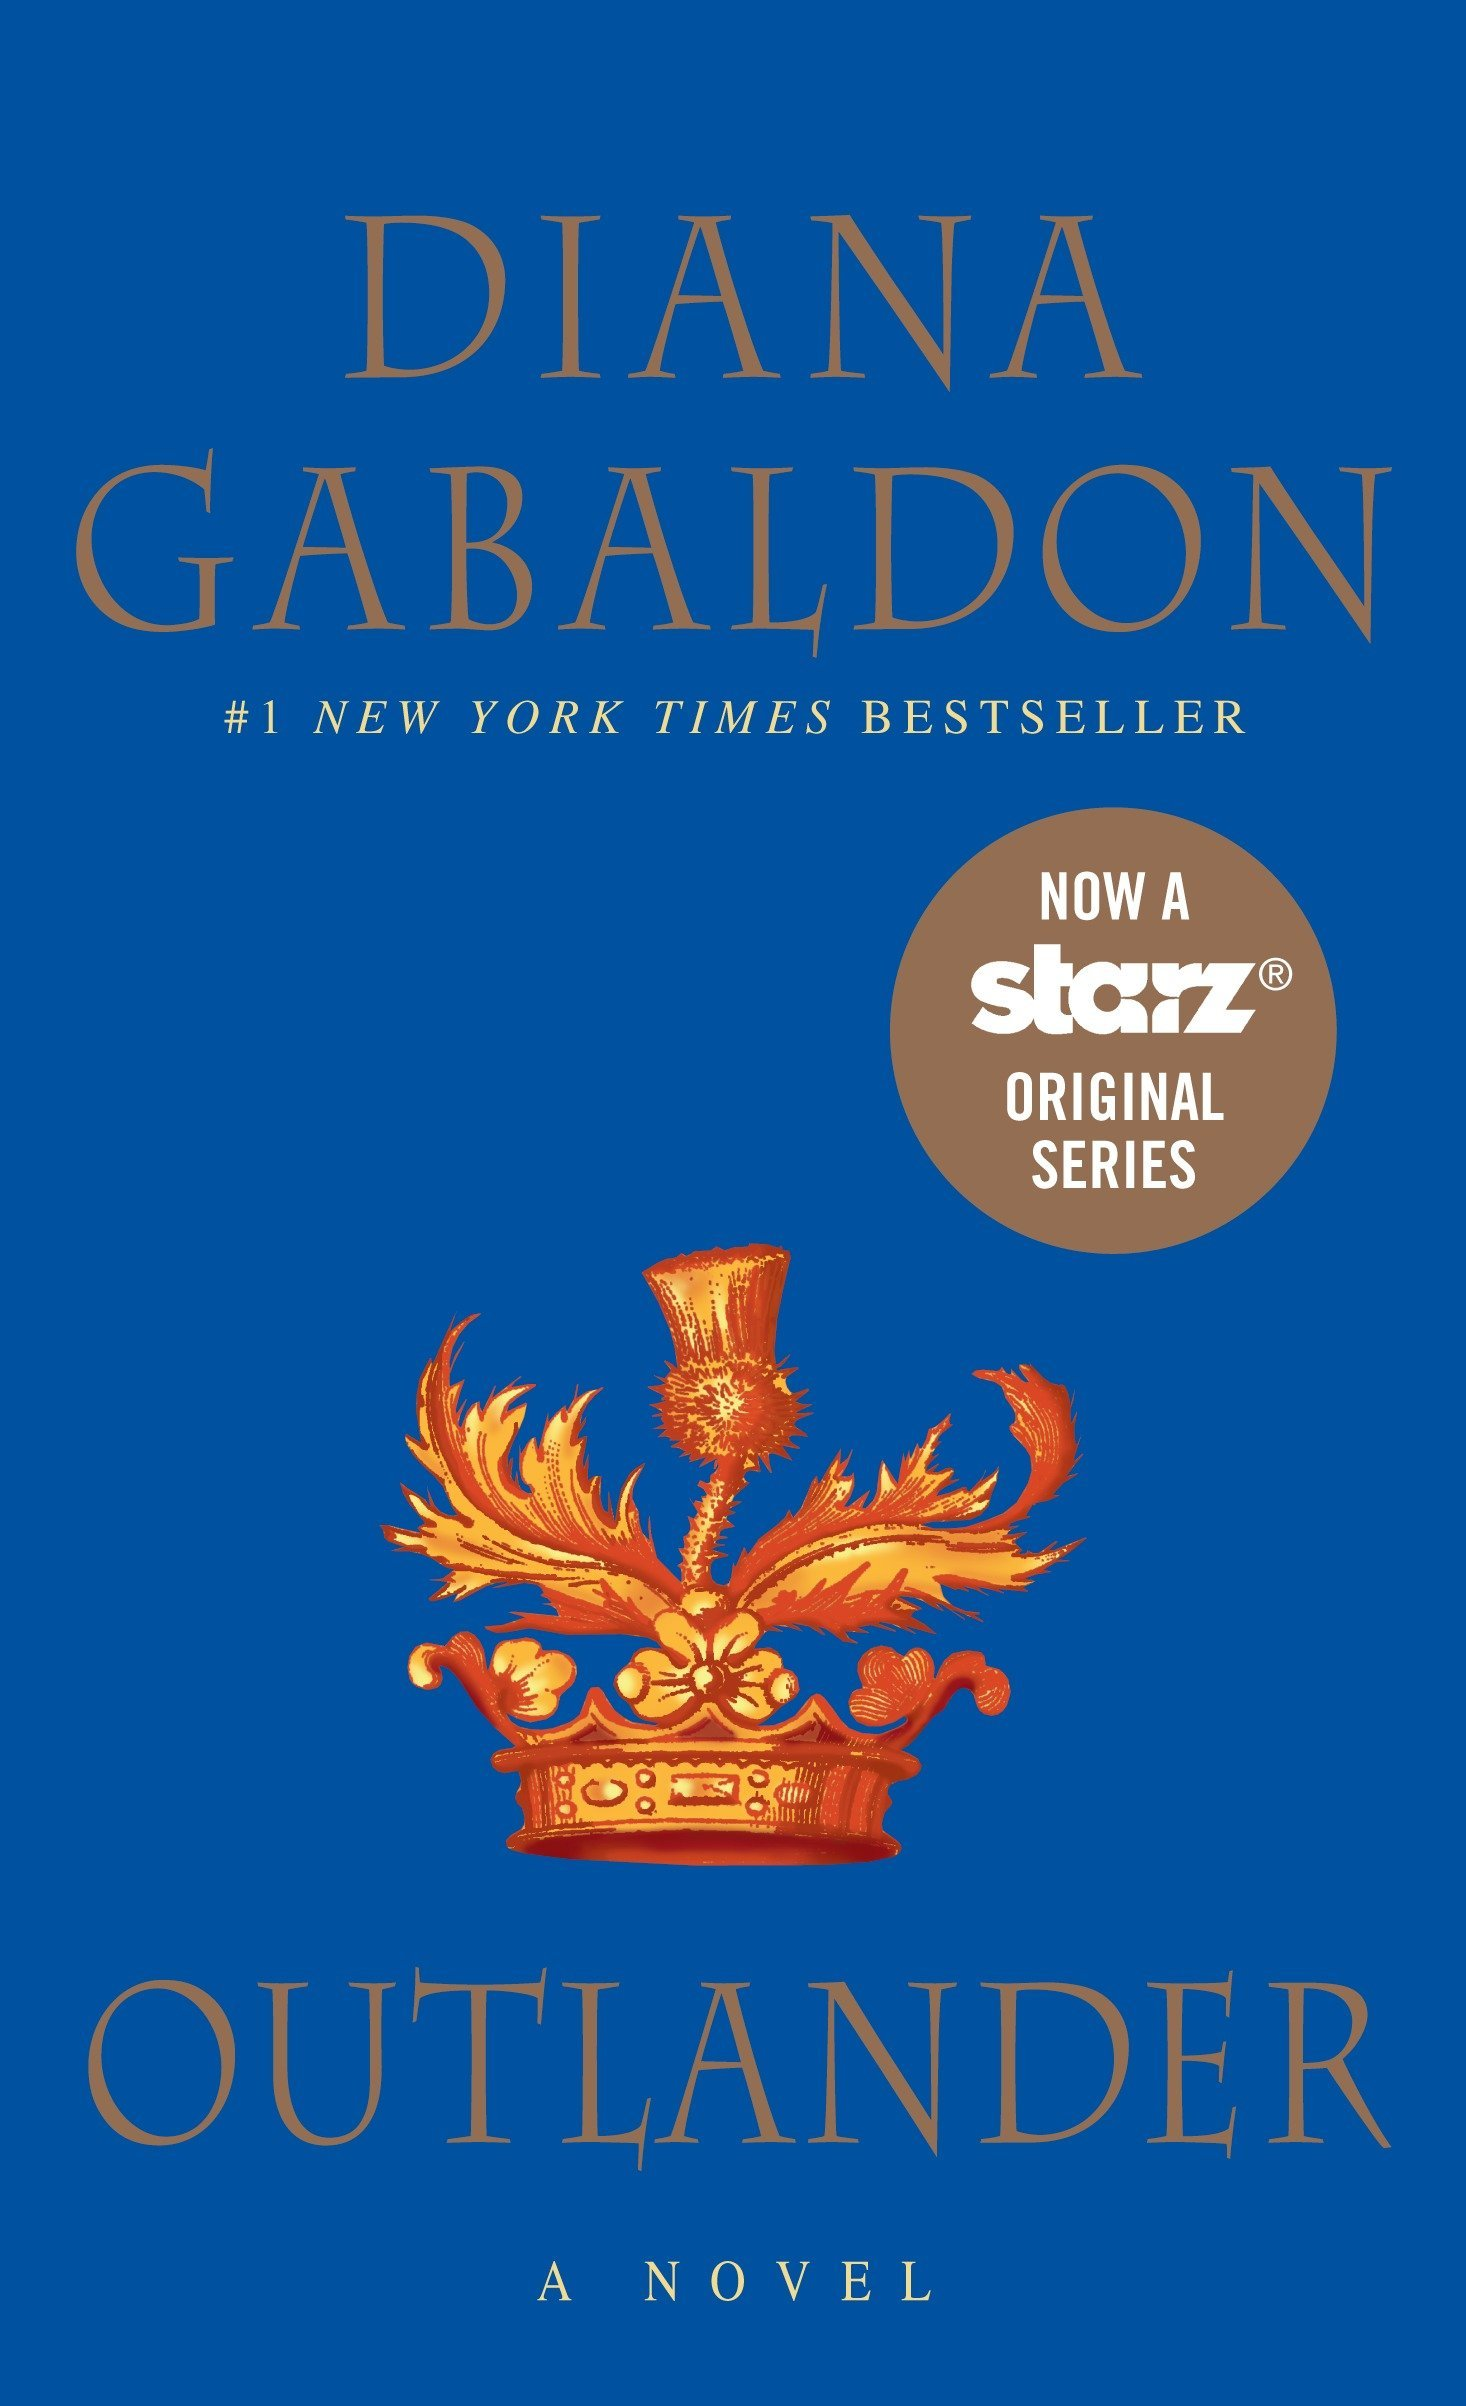 Diana Gabaldon's literary escape Outlander, a story about romance and time travel.